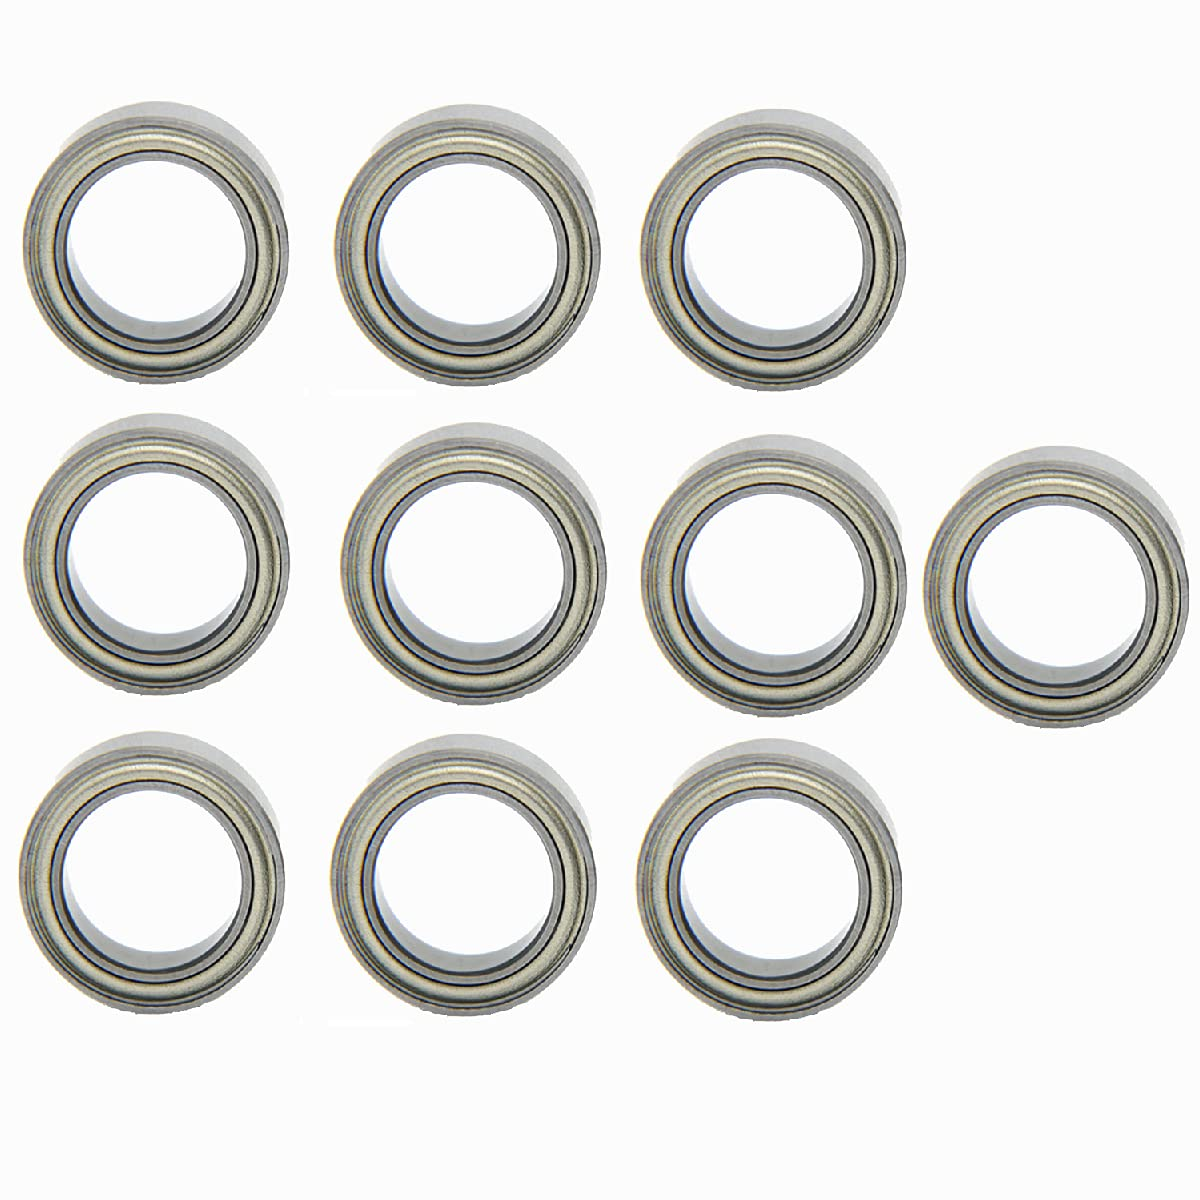 10Pcs Groove Clearance SALE! Limited time! Ball Bearings Quality inspection 6810ZZ Cover Iron Bearing Bearin